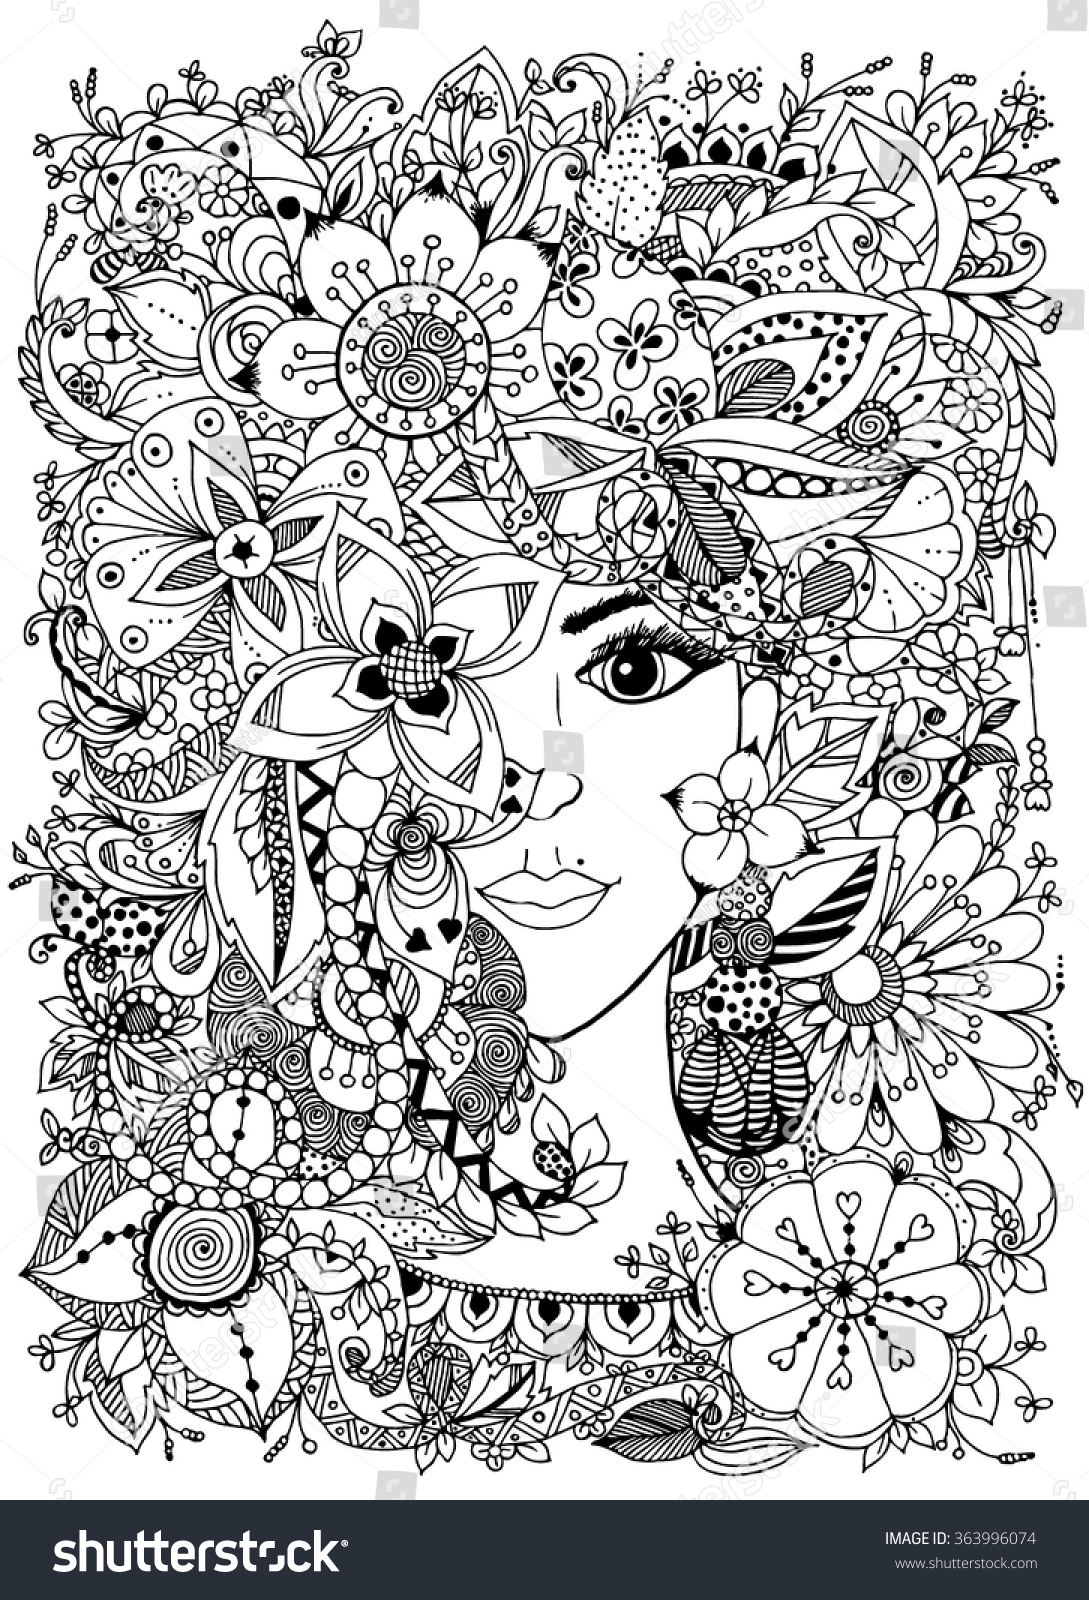 Vector illustration girl flowers on her stock vector for Doodle art free